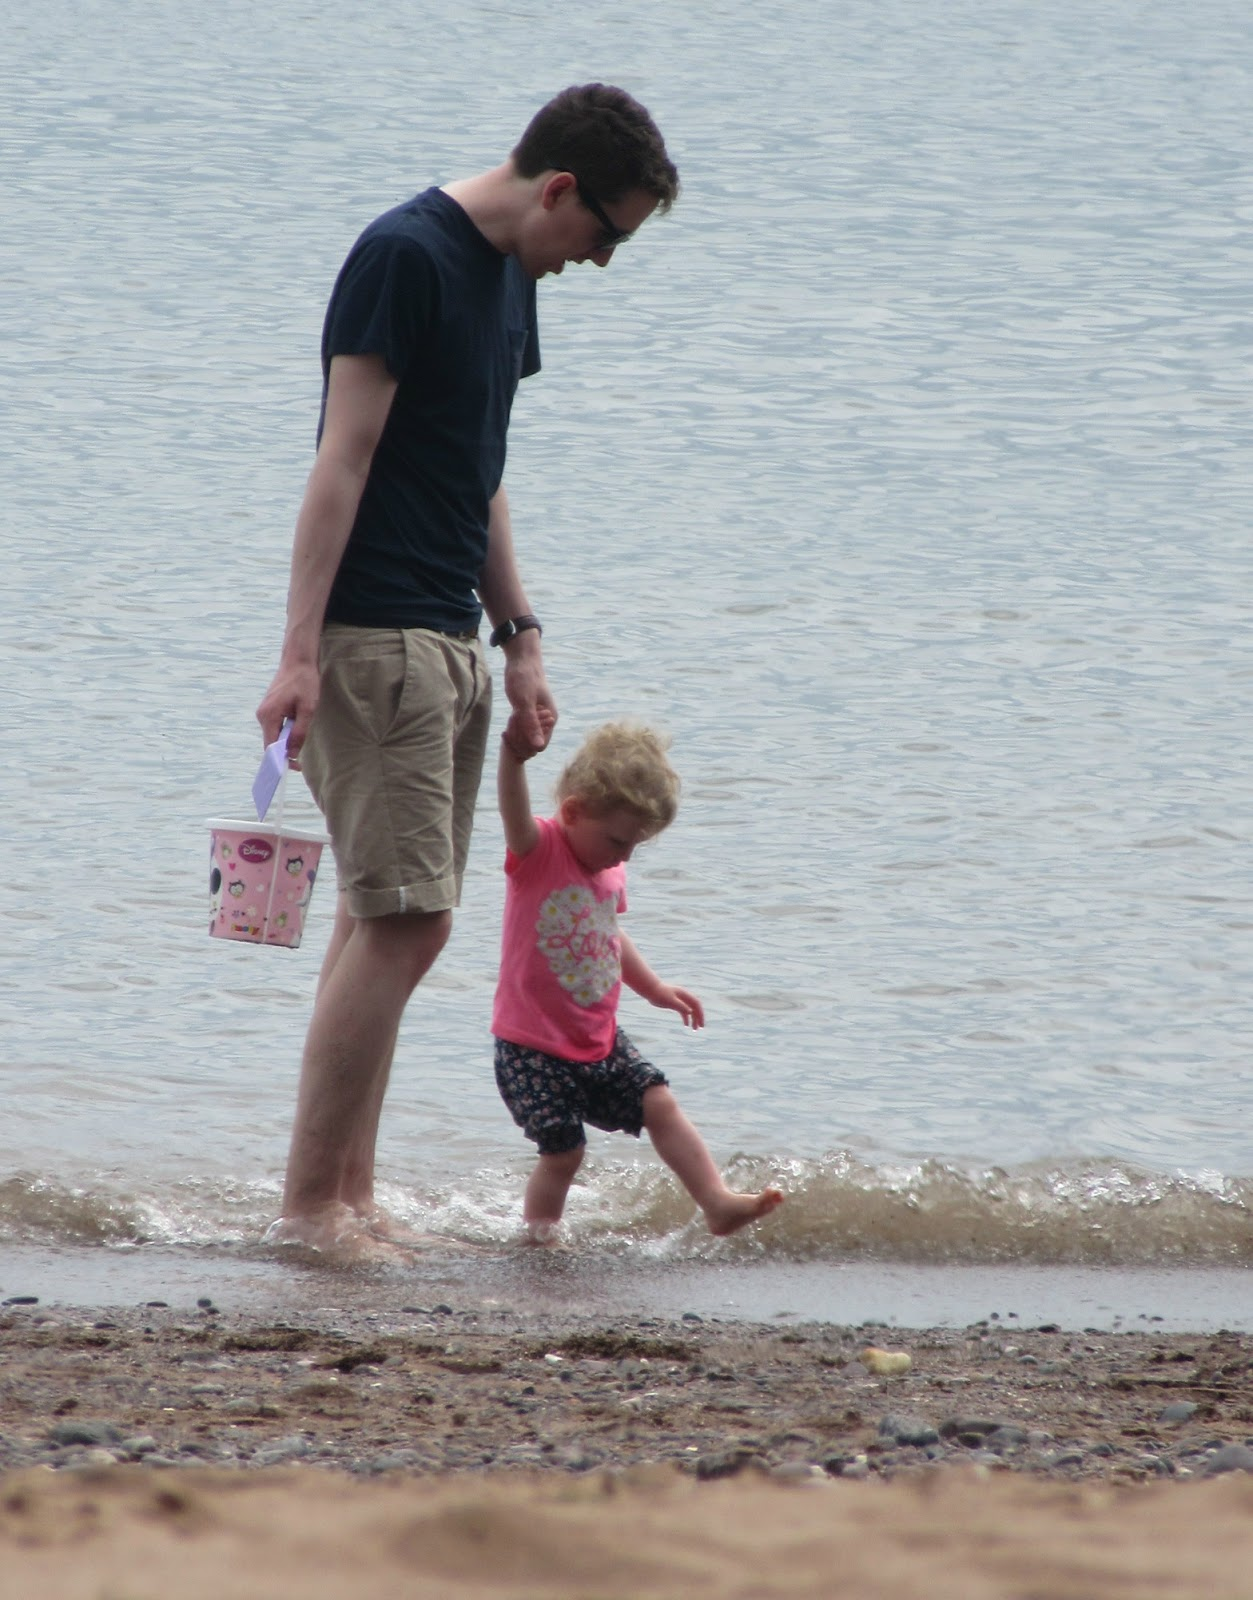 Daddy and daughter walking in the sea